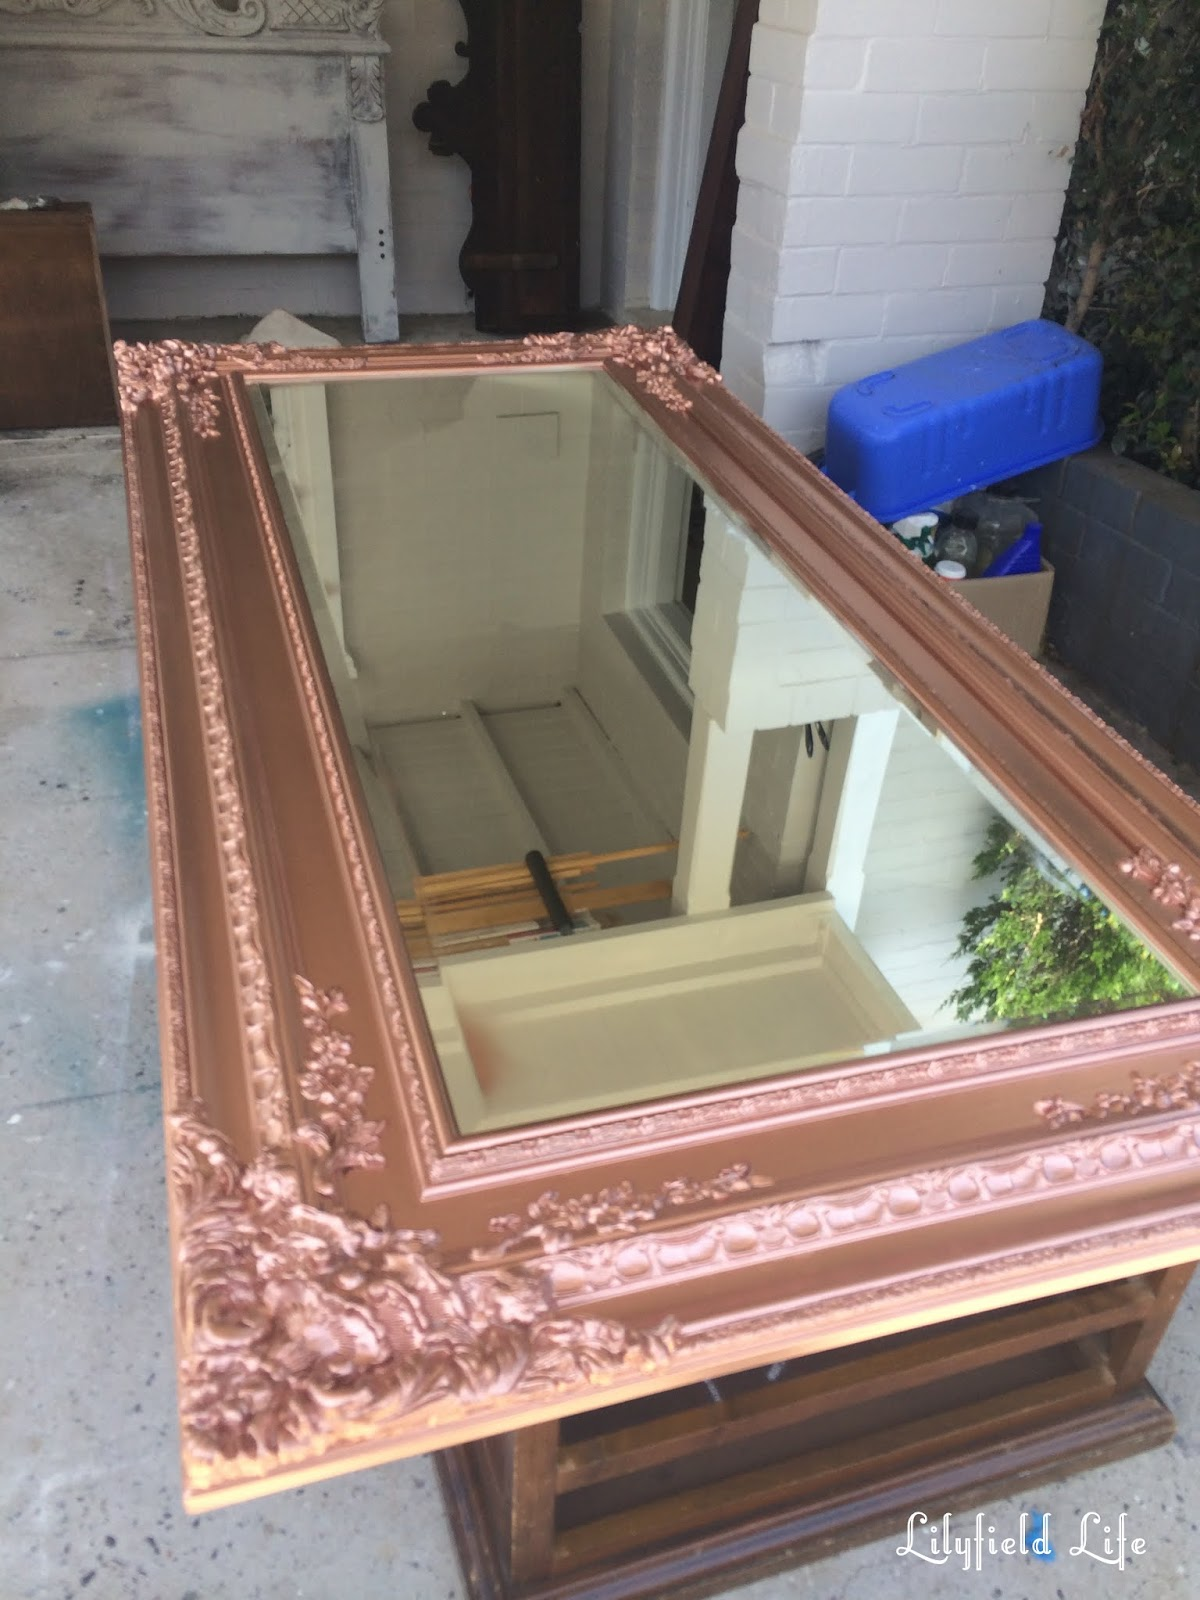 Lilyfield Life: Antique Rose Gold Mirror (from aged cream)